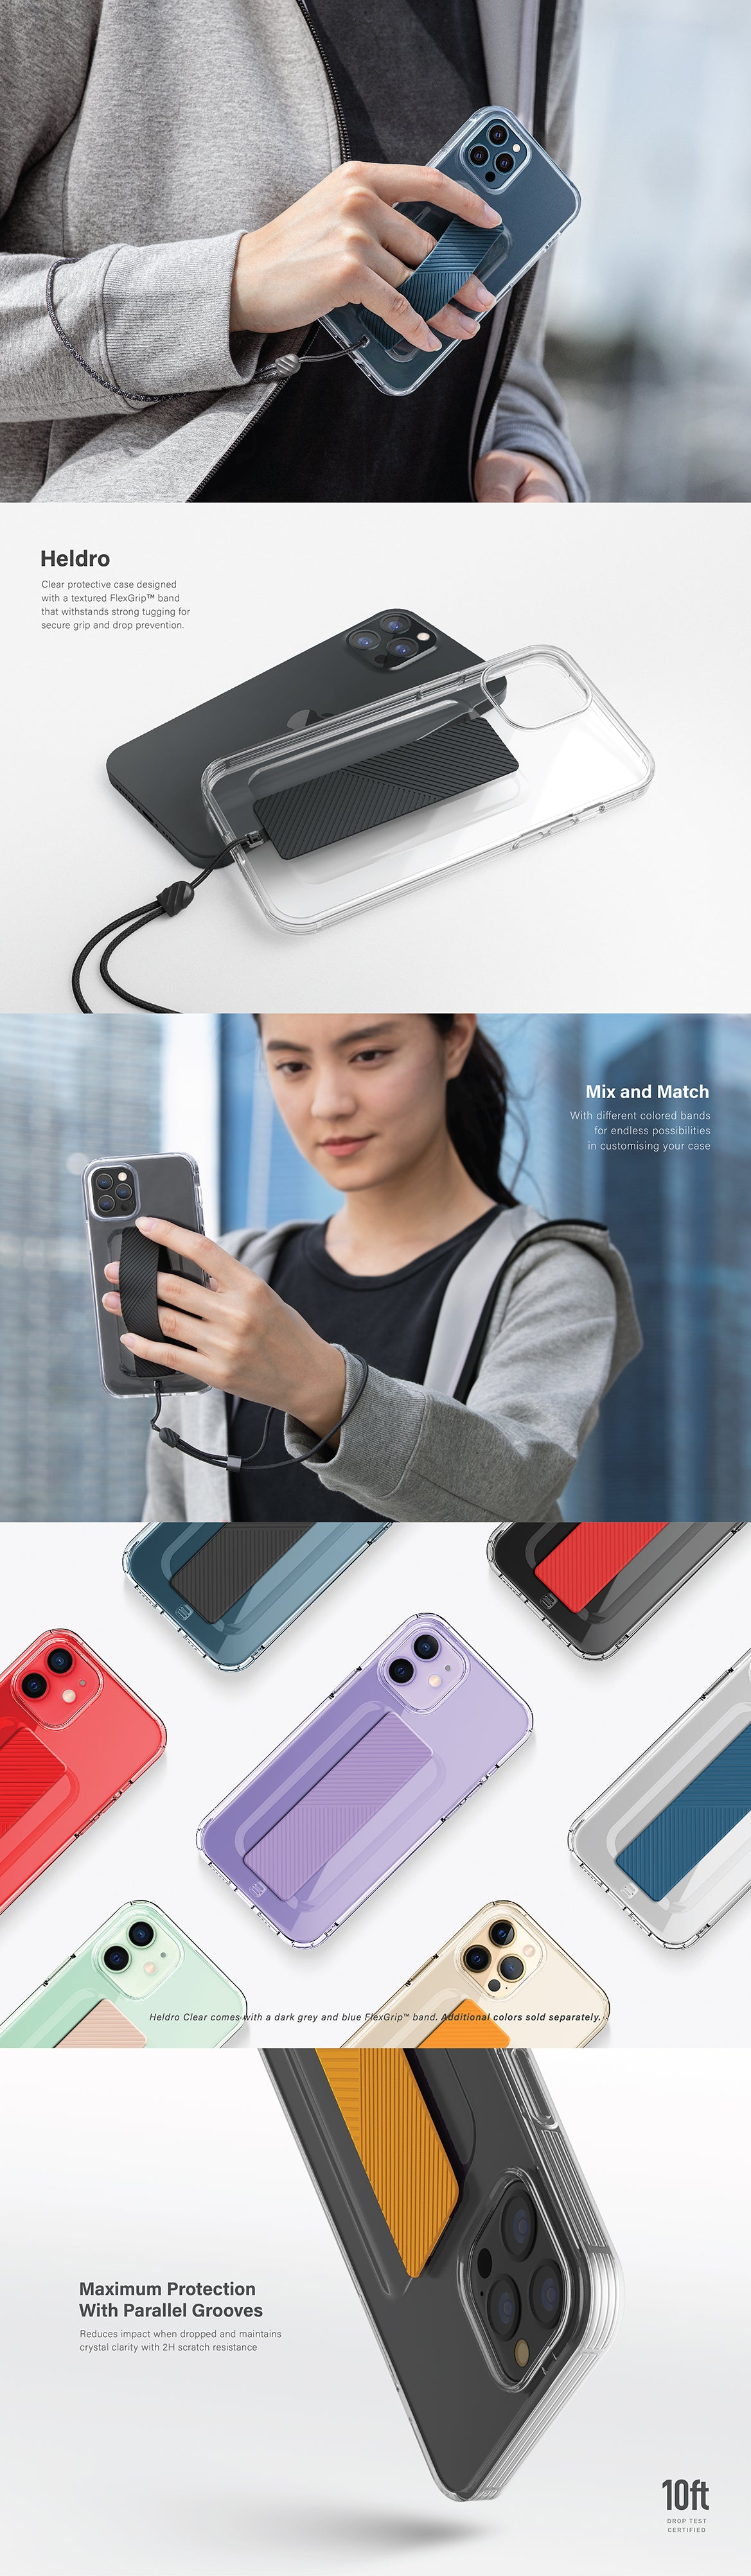 UNIQ Heldro Clear iPhone 12 Pro Max Case with FlexGrip™ Band | Grip Case | Do more with one hand